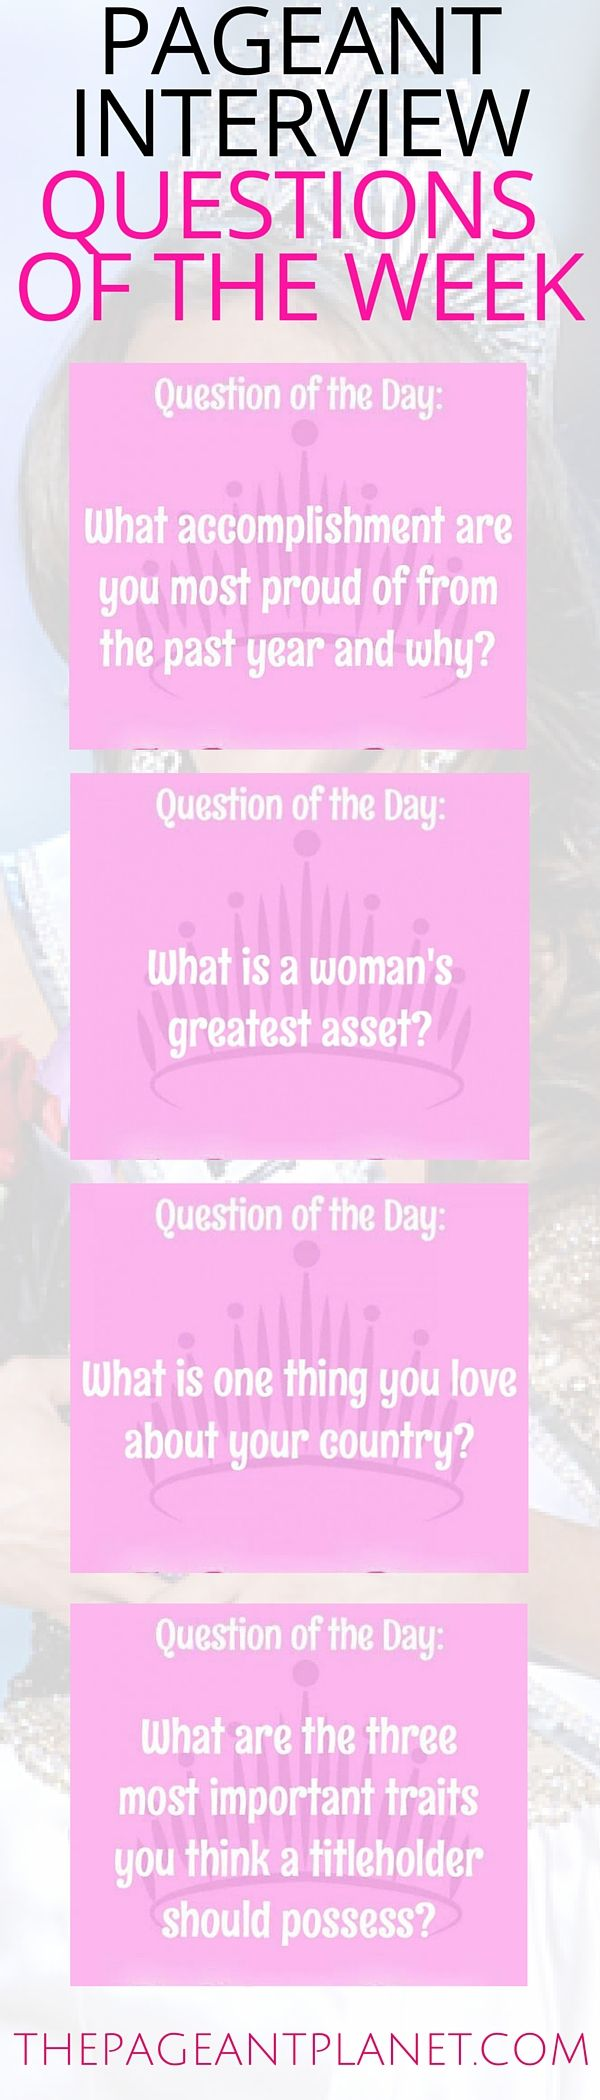 best ideas about pageant questions beauty we ve rounded up the top questions of the week for you to practice for